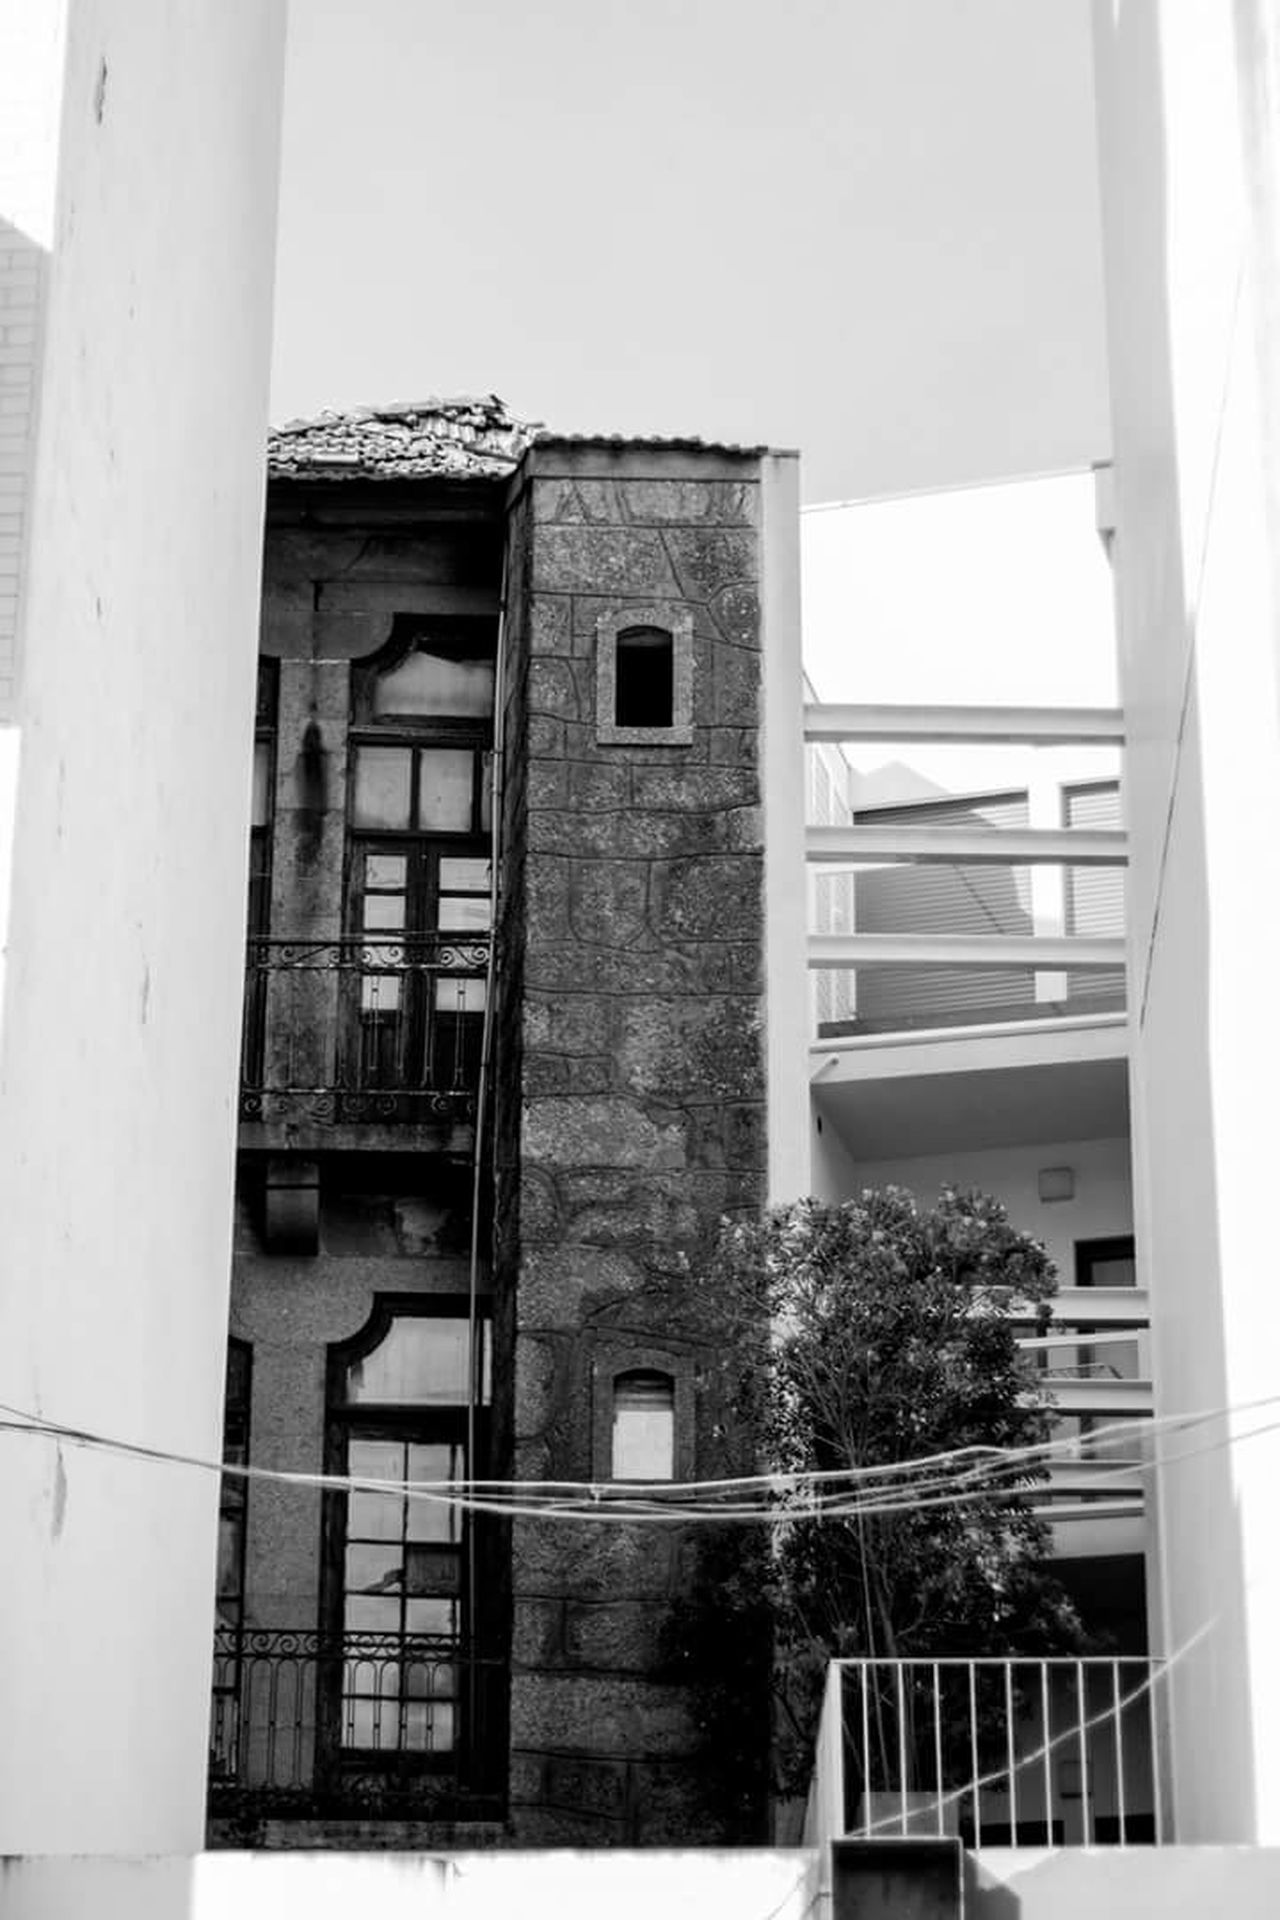 Building Exterior Window Built Structure Architecture No People Outdoors Streetphotography Street Photography Blackandwhite Photography Black And White Blackandwhite High Contrast Bnw High Contrast Urban Perspectives Black & White Architecture